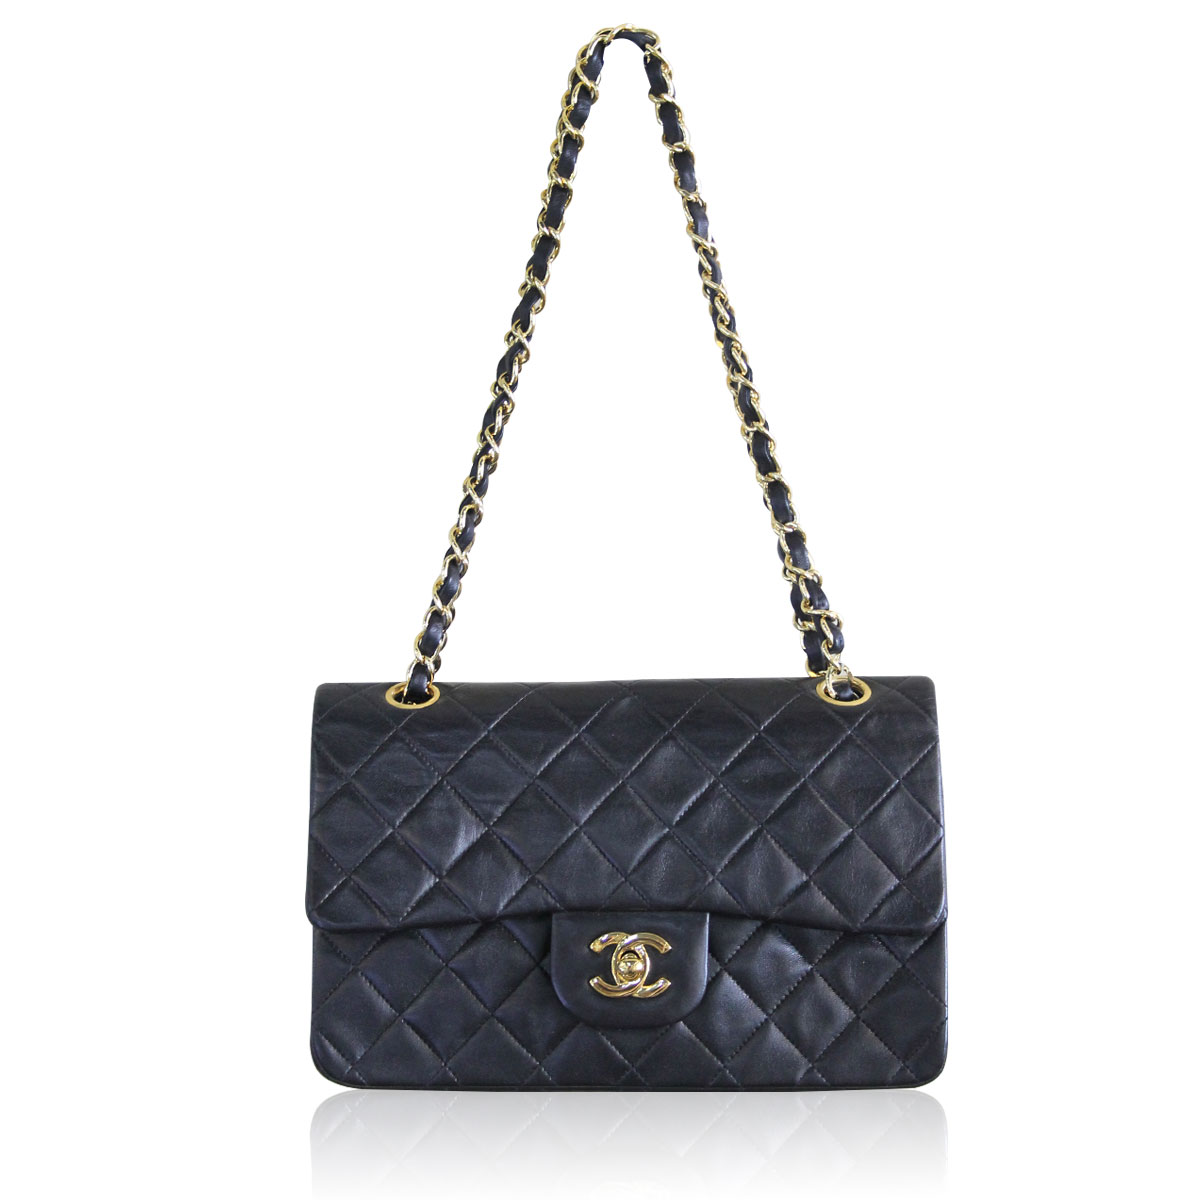 3c1edf8f5141ba Where To Sell Vintage Chanel Bag. Chanel Brown Caviar GHW Vintage Quilted  Leather Crossbody Shoulder Bag